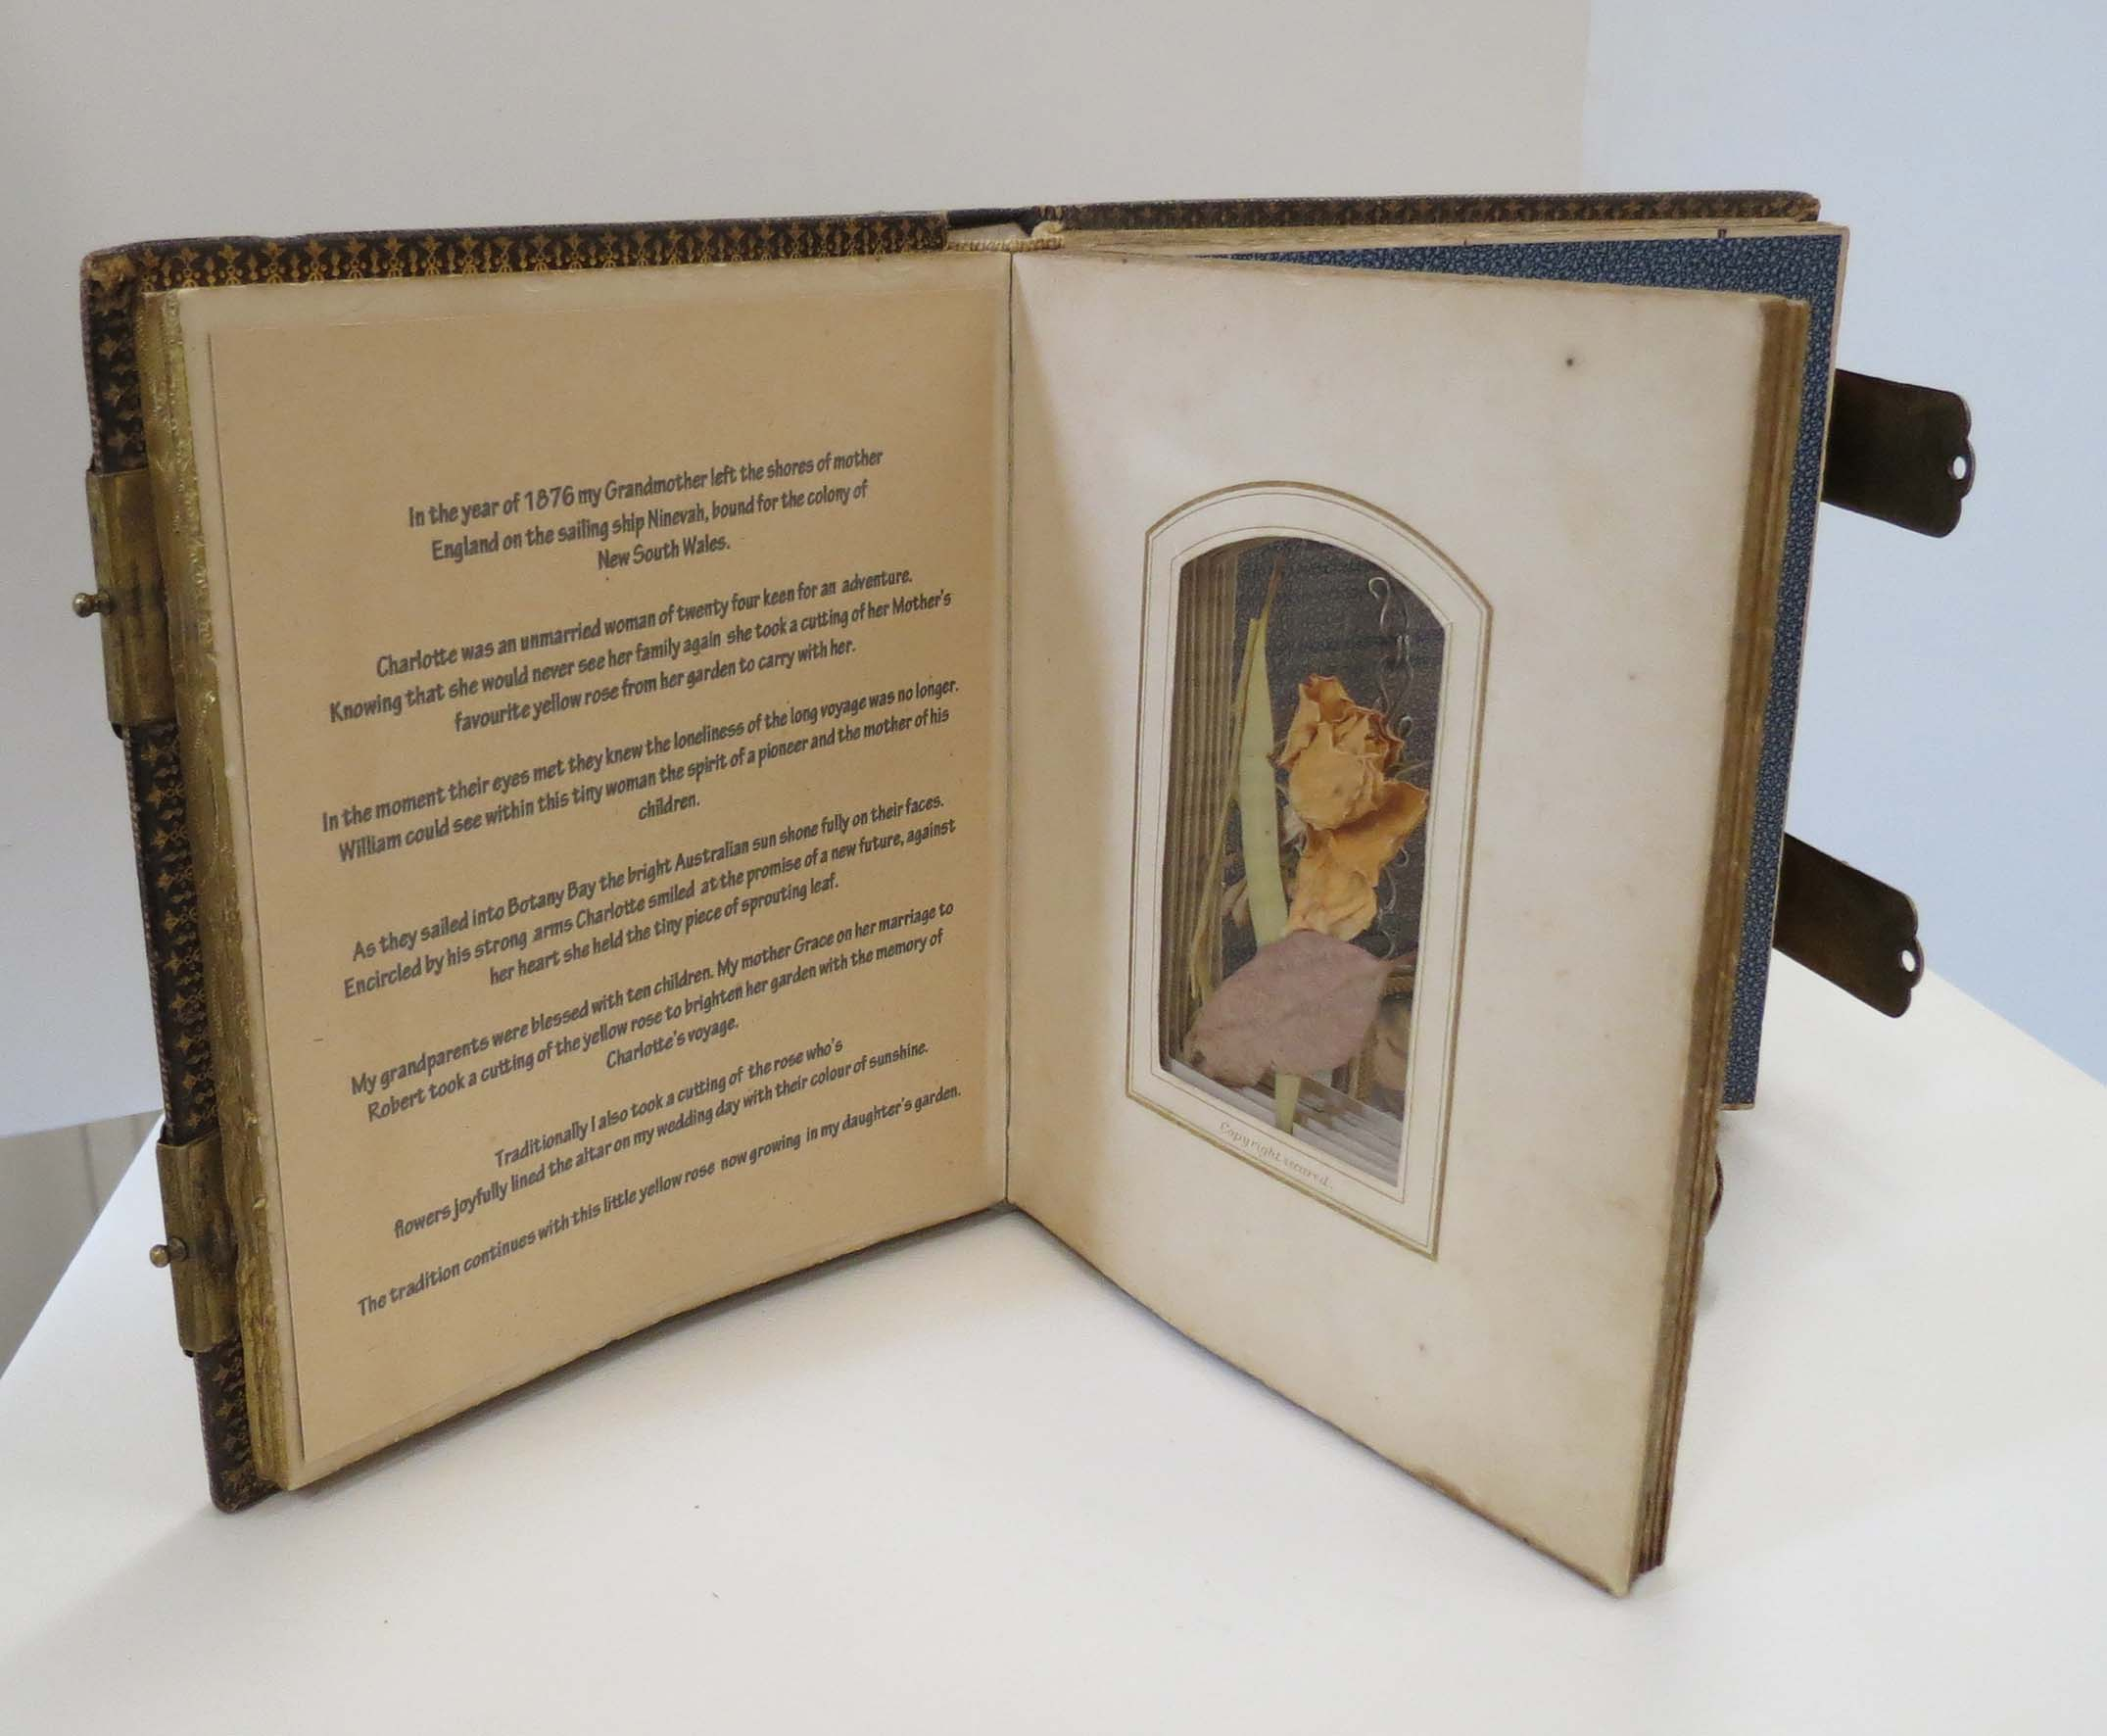 31. Kathy Aspinall, 'Charlotte's Rose', 2012, Victorian photograph album, personal ephemera, brass, story necklace, altered book, $1,200